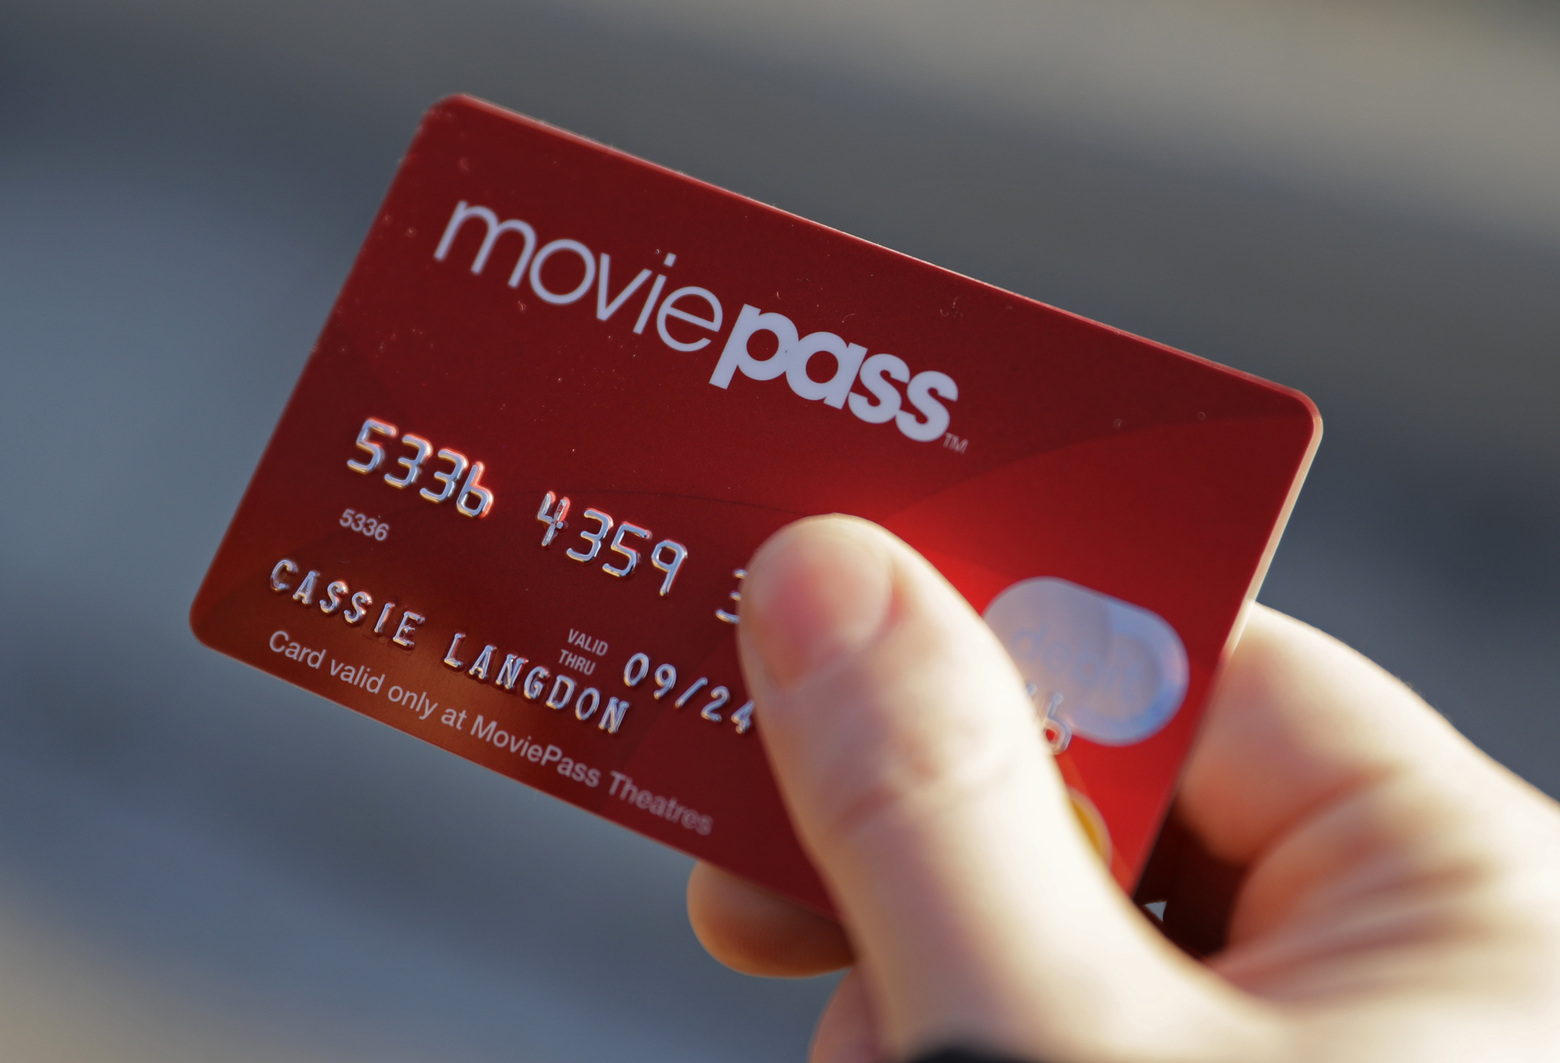 With her MoviePass card, Cassie Langdon says she's seeing more smaller releases in addition to blockbusters and sequels. (Darron Cummings/AP)